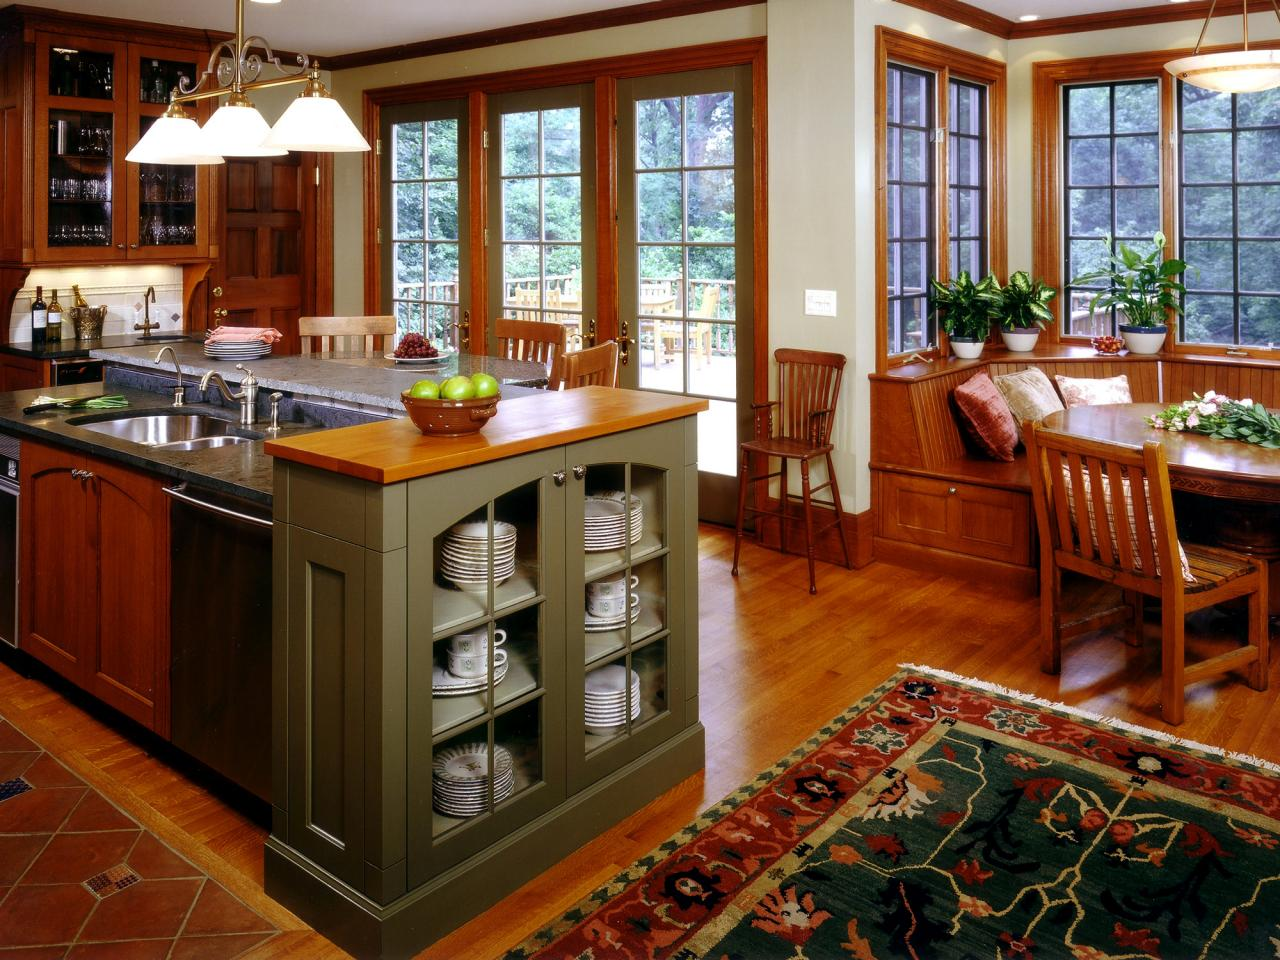 Kitchen Island With A Breakfast Bar